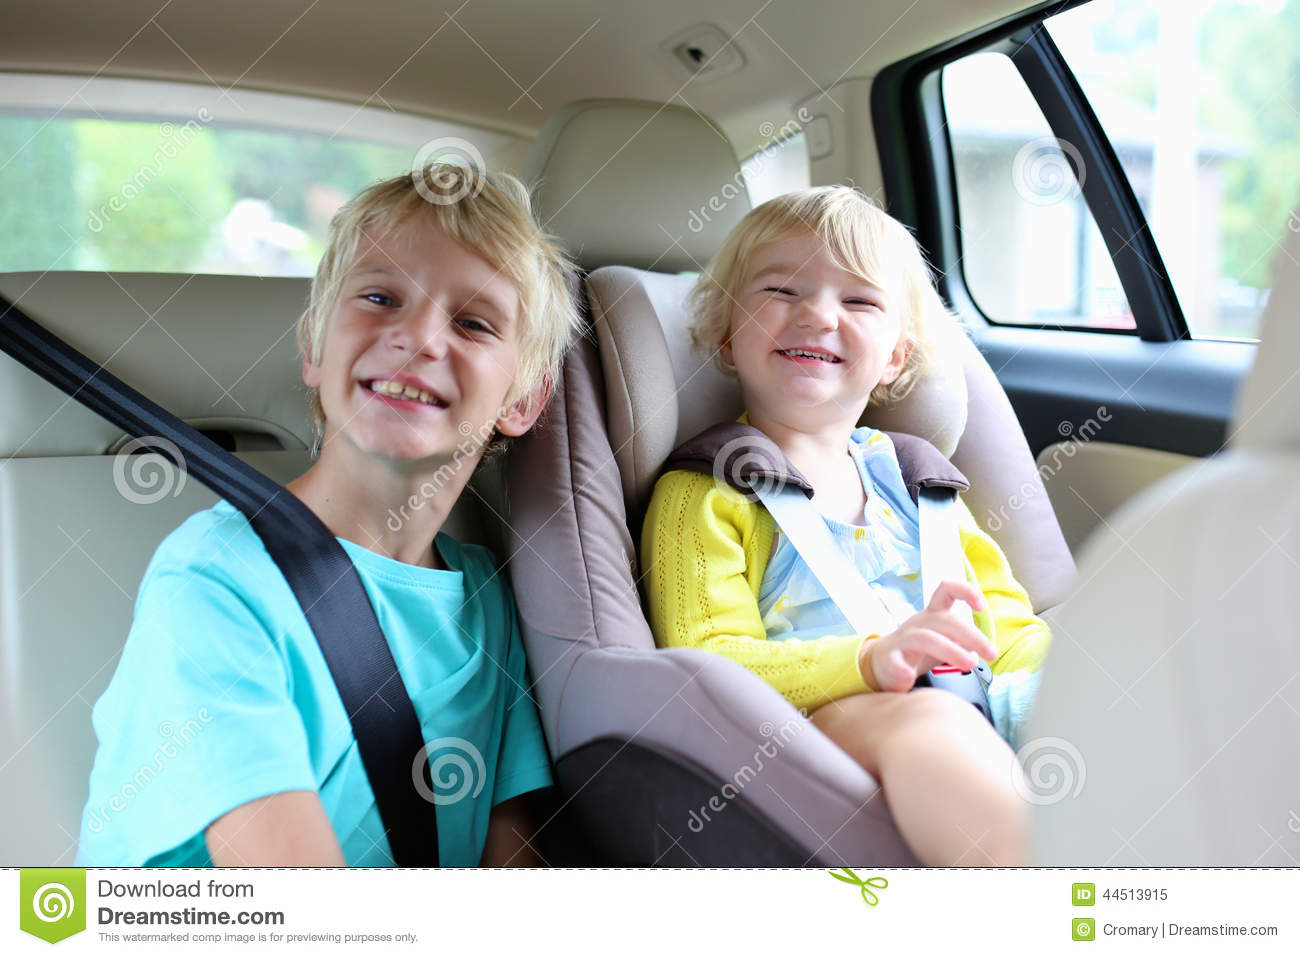 Brother and sister in car